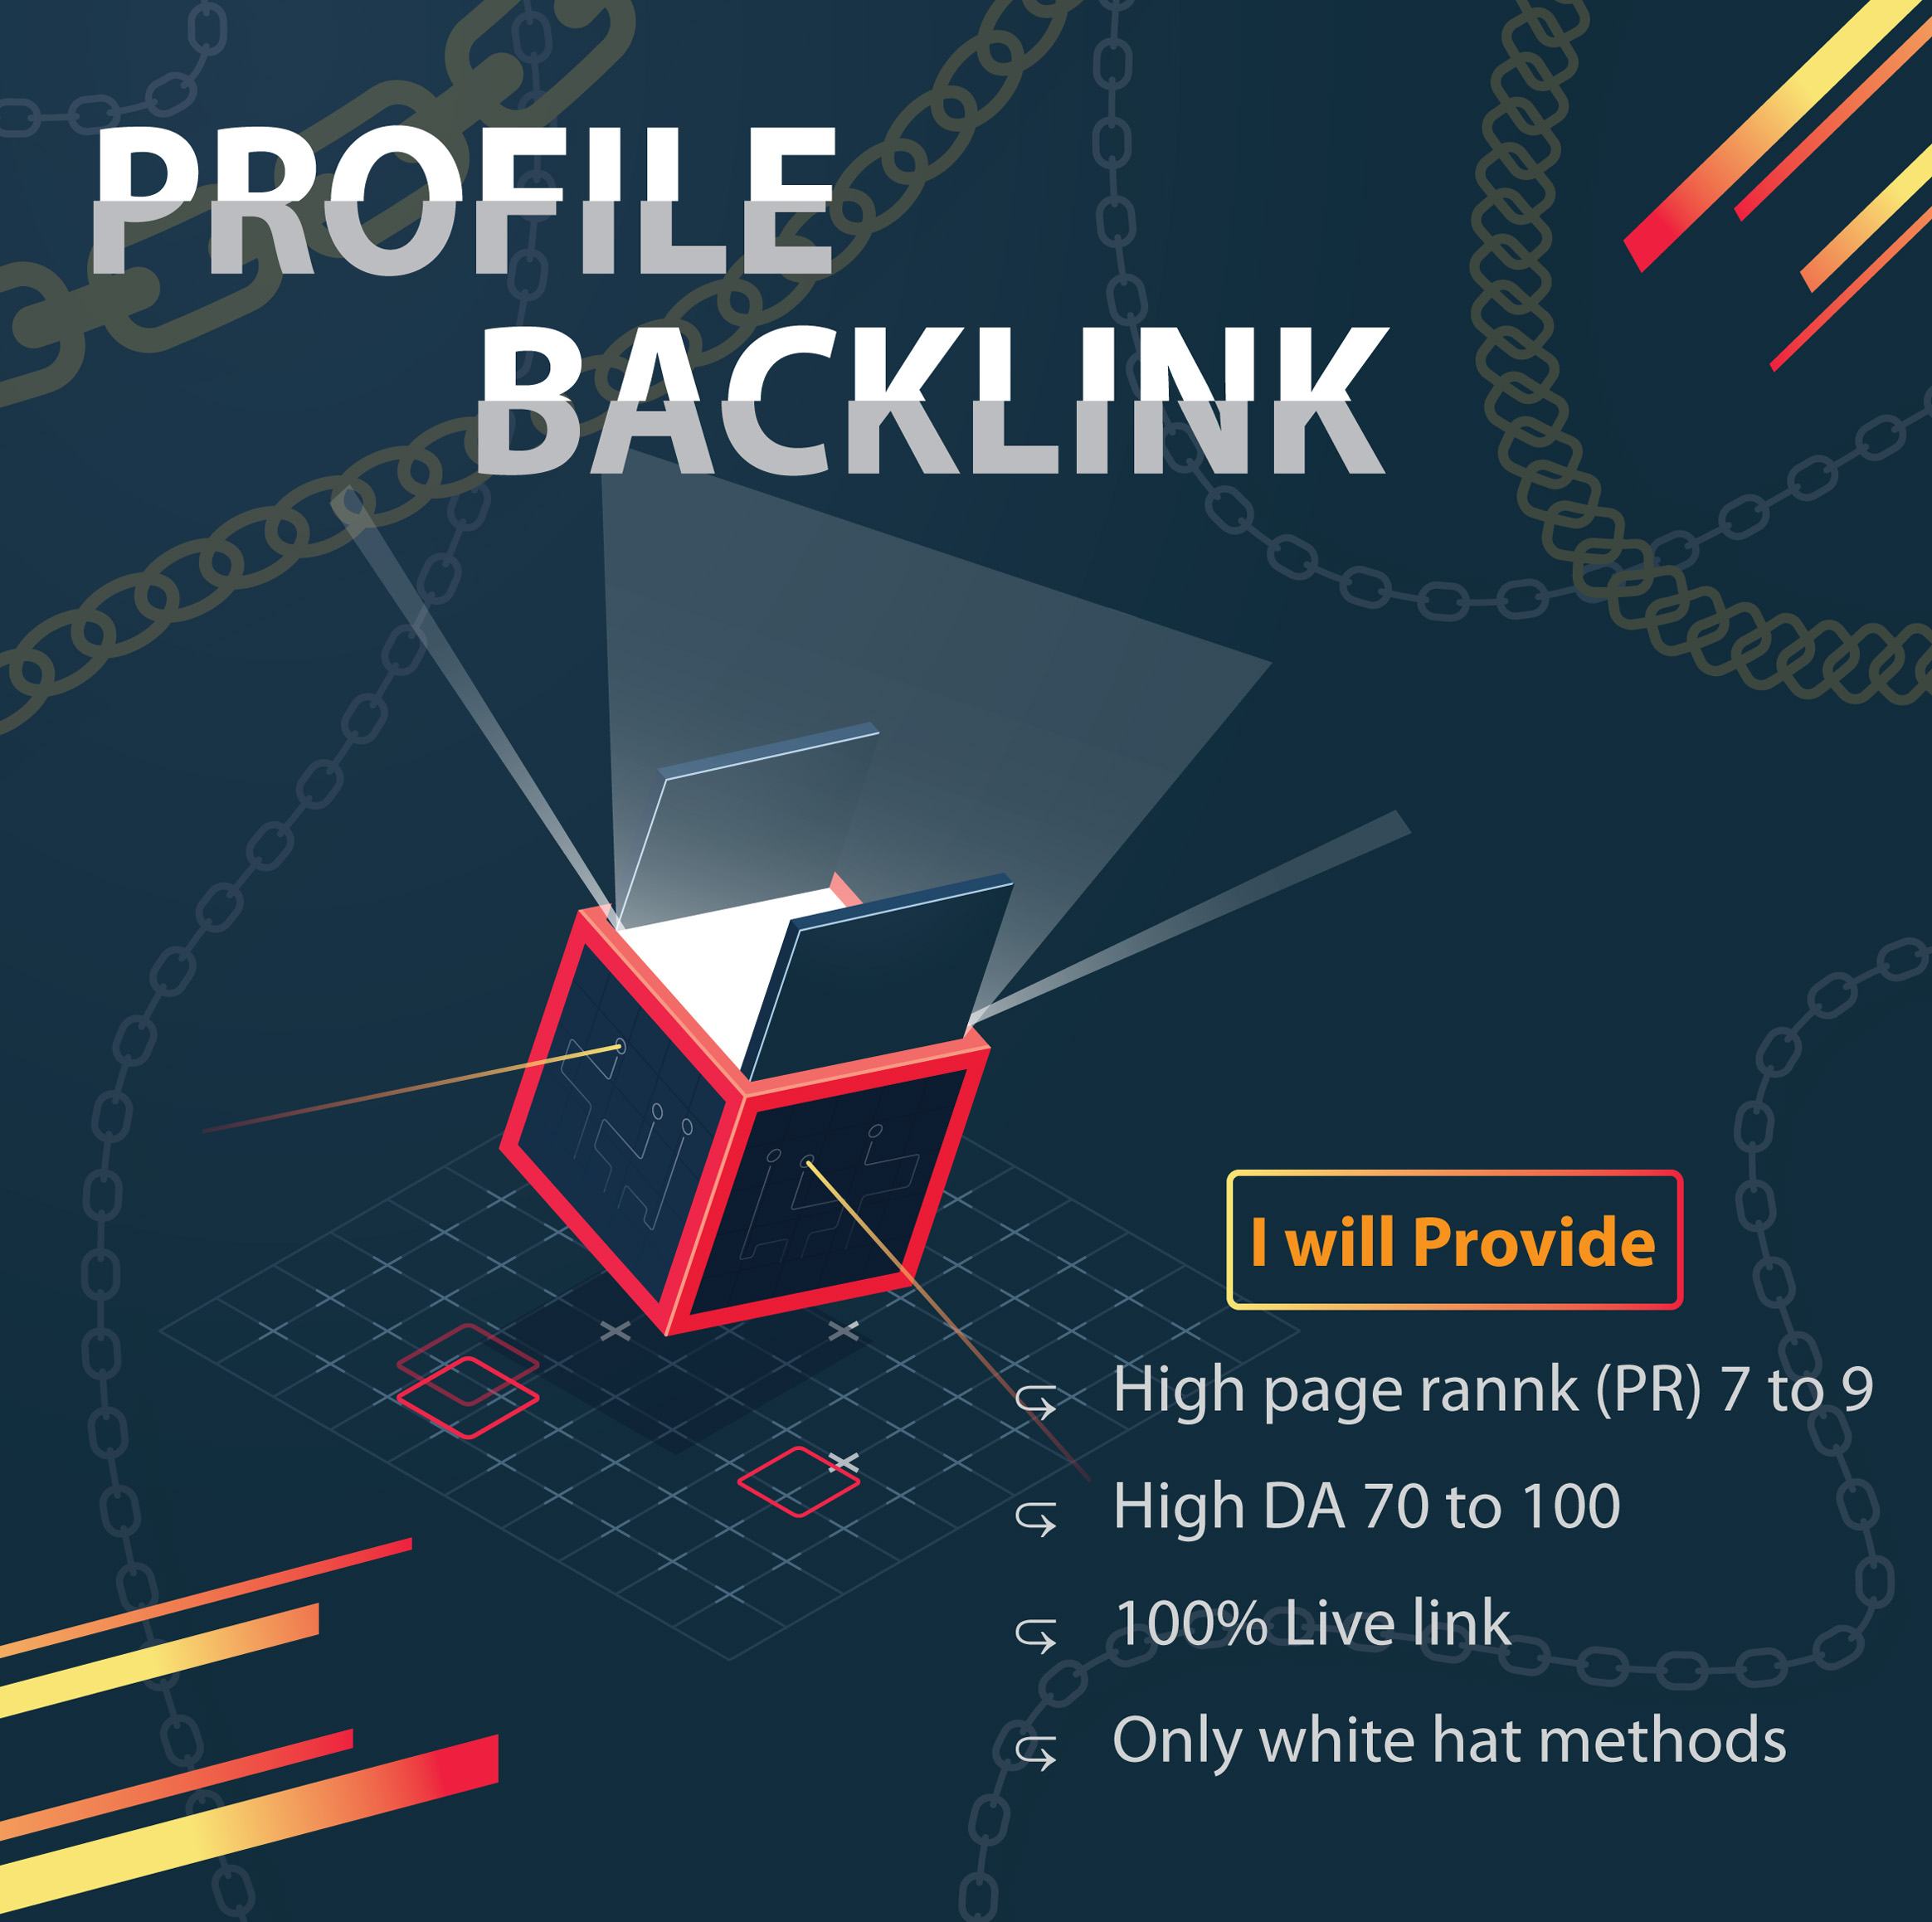 I will build you 100 profile backlink from the PR9 High authority website.